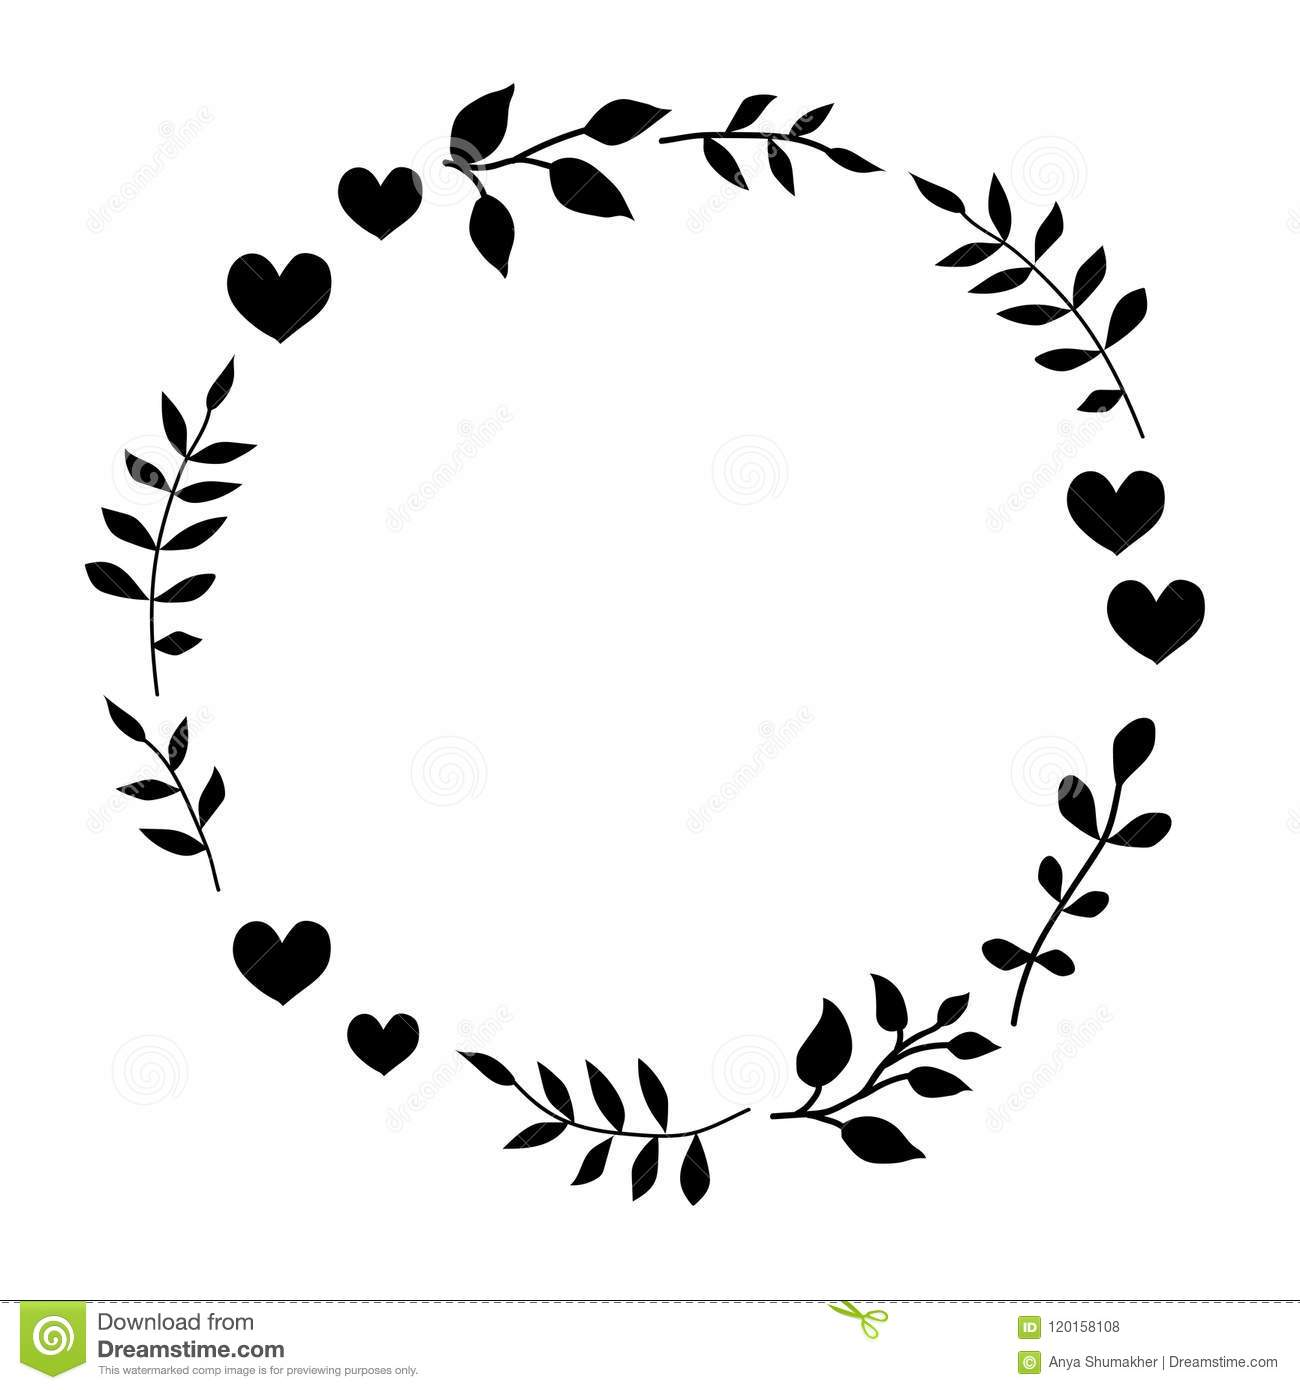 Doodle Monochrome Heart And Leaf Circle Frame On A Black Background.